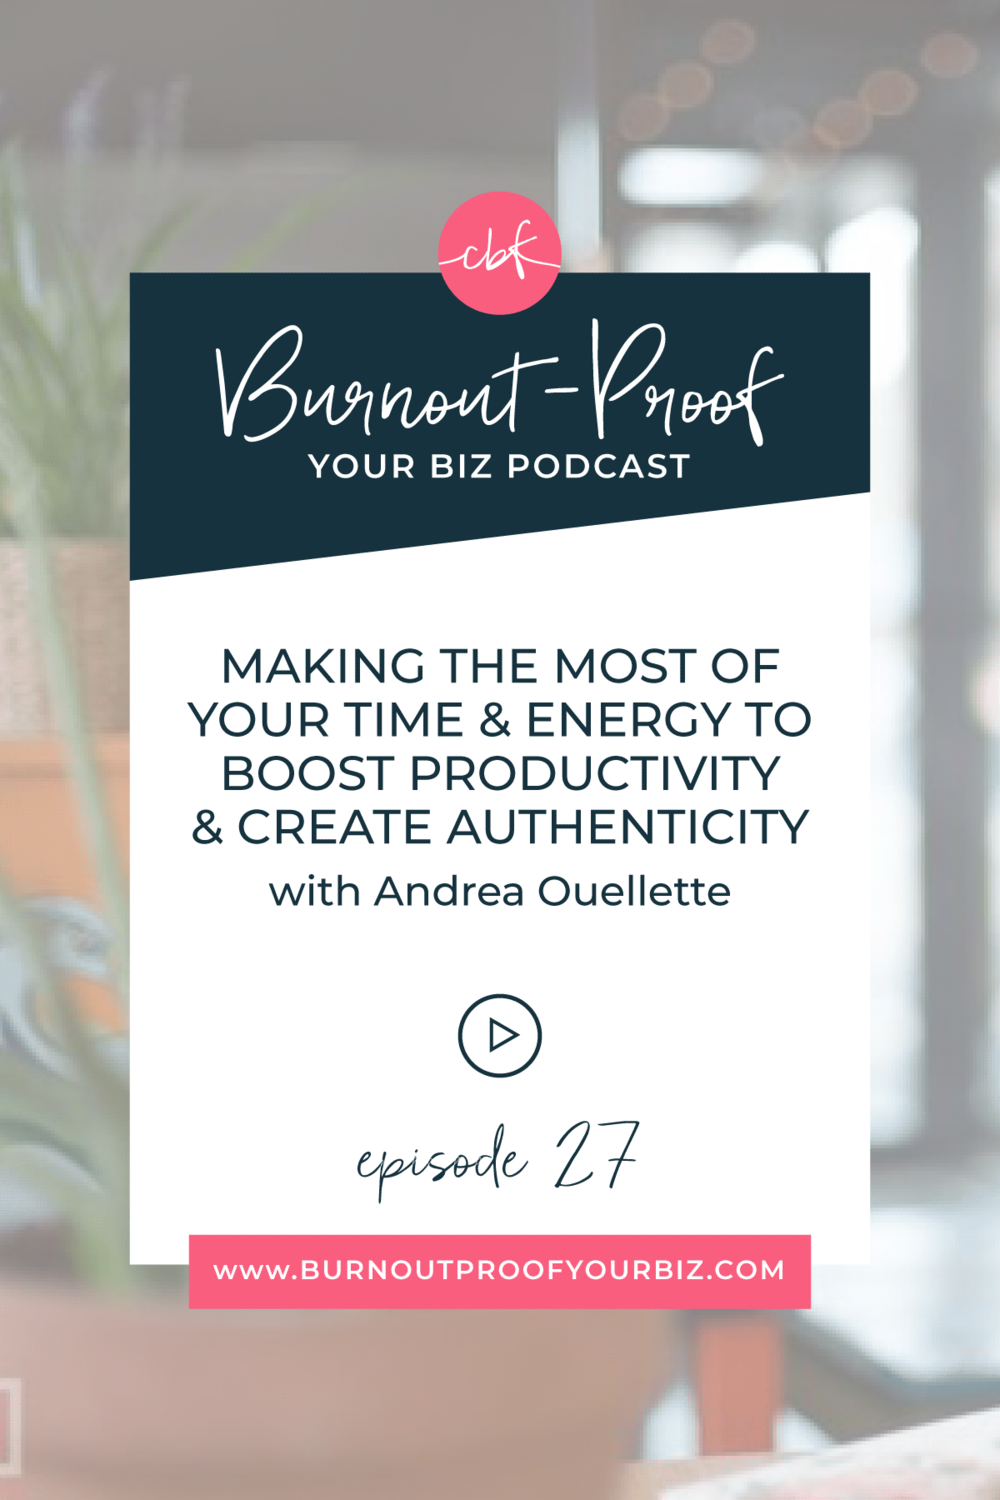 Burnout-Proof Your Biz Podcast with Chelsea B Foster | Episode 027 - Making the Most of Your Time and Energy to Boost Productivity and Create Authenticity with Andrea Ouellette | Learn how to run your biz and live your dream life on your own terms without the fear of burnout.